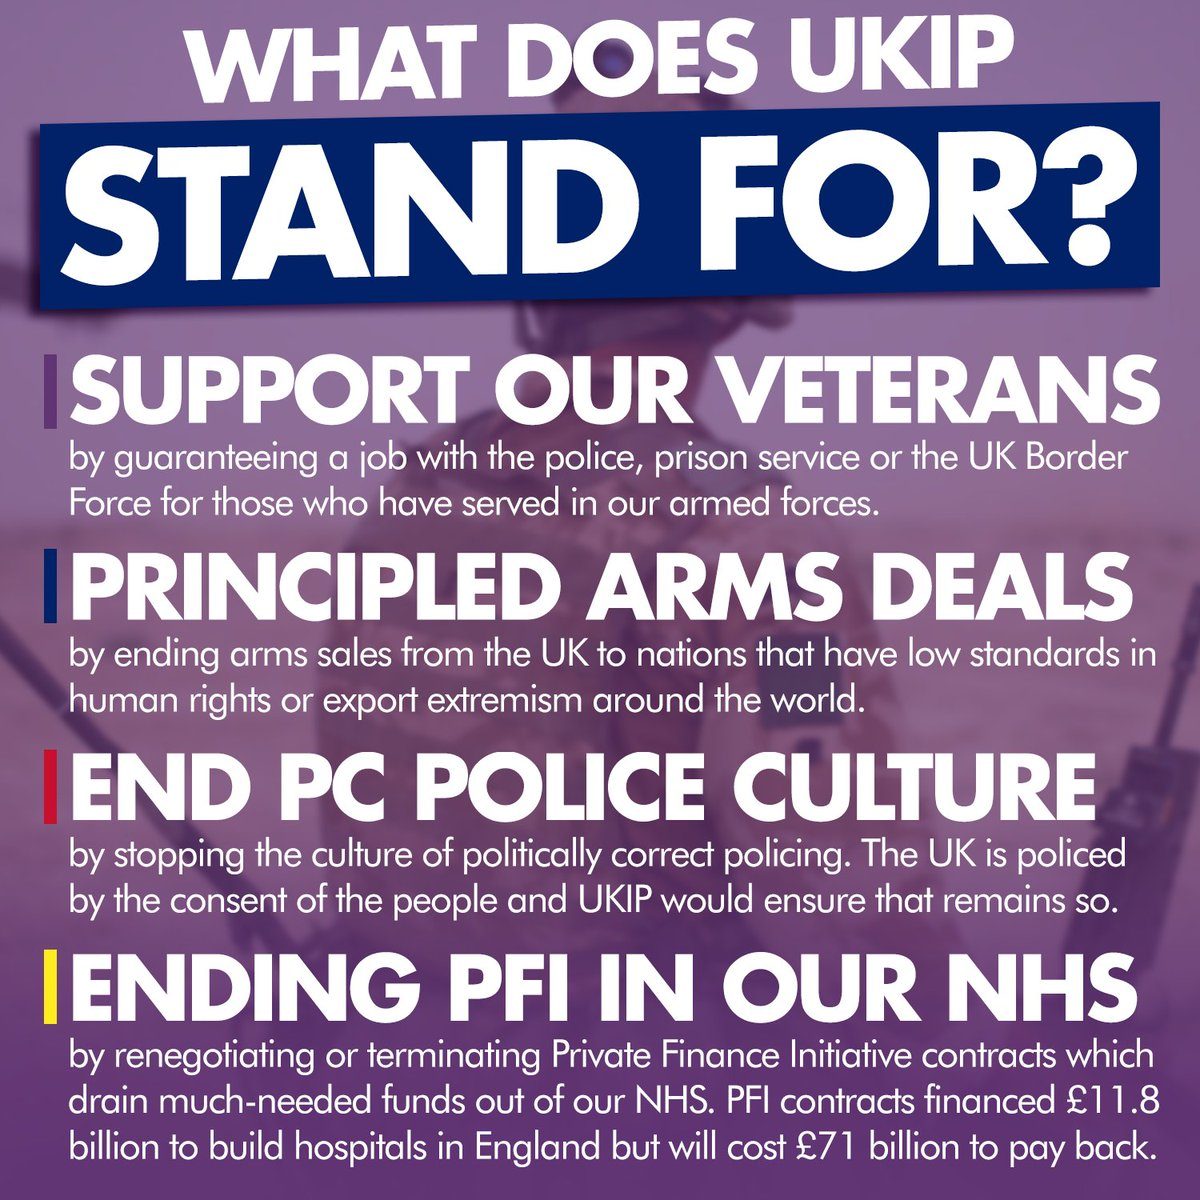 🎖️ UKIP stands for common sense when it comes to our brave veterans and emergency services. Let's end corrupt PFIs that are draining our NHS  With membership starting from as low as £2, there has never been a better time to join us.  ➡️